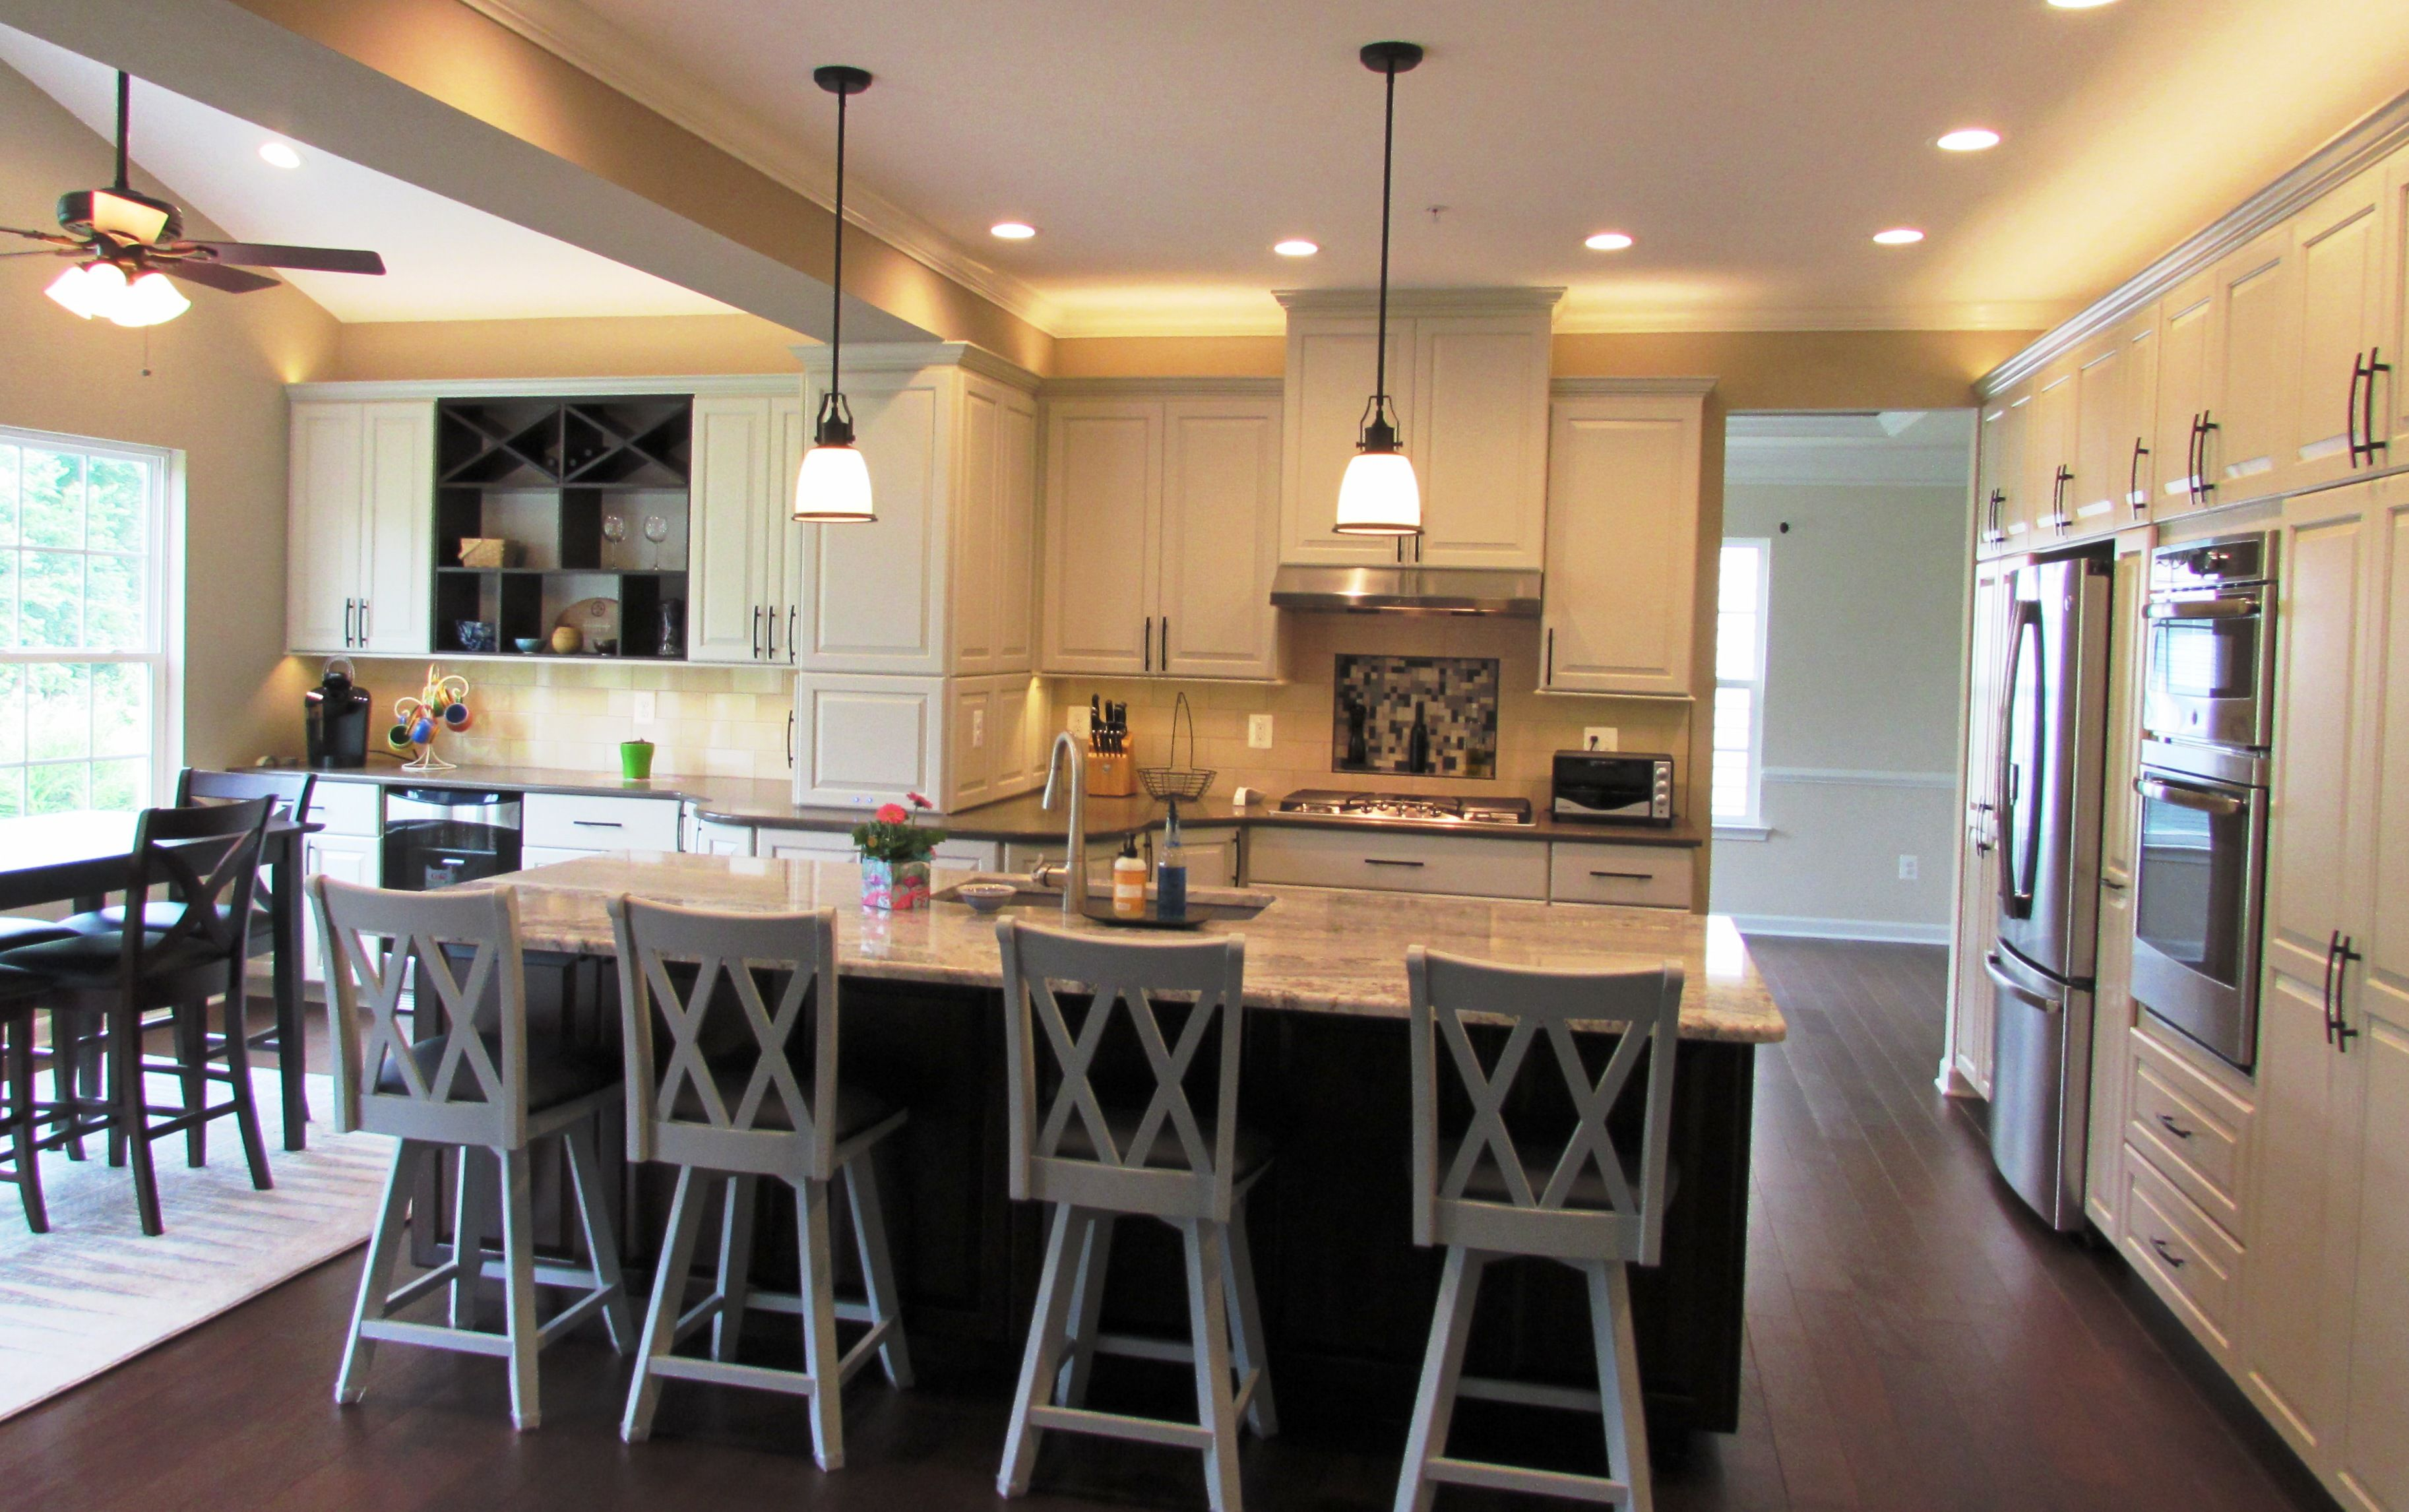 Urbana Md Kitchen Remodel With Under Cabinet Lighting And Crown Lighting Above Kitchen Remodeling Contractors Kitchen Remodel Kitchen Remodel Cost